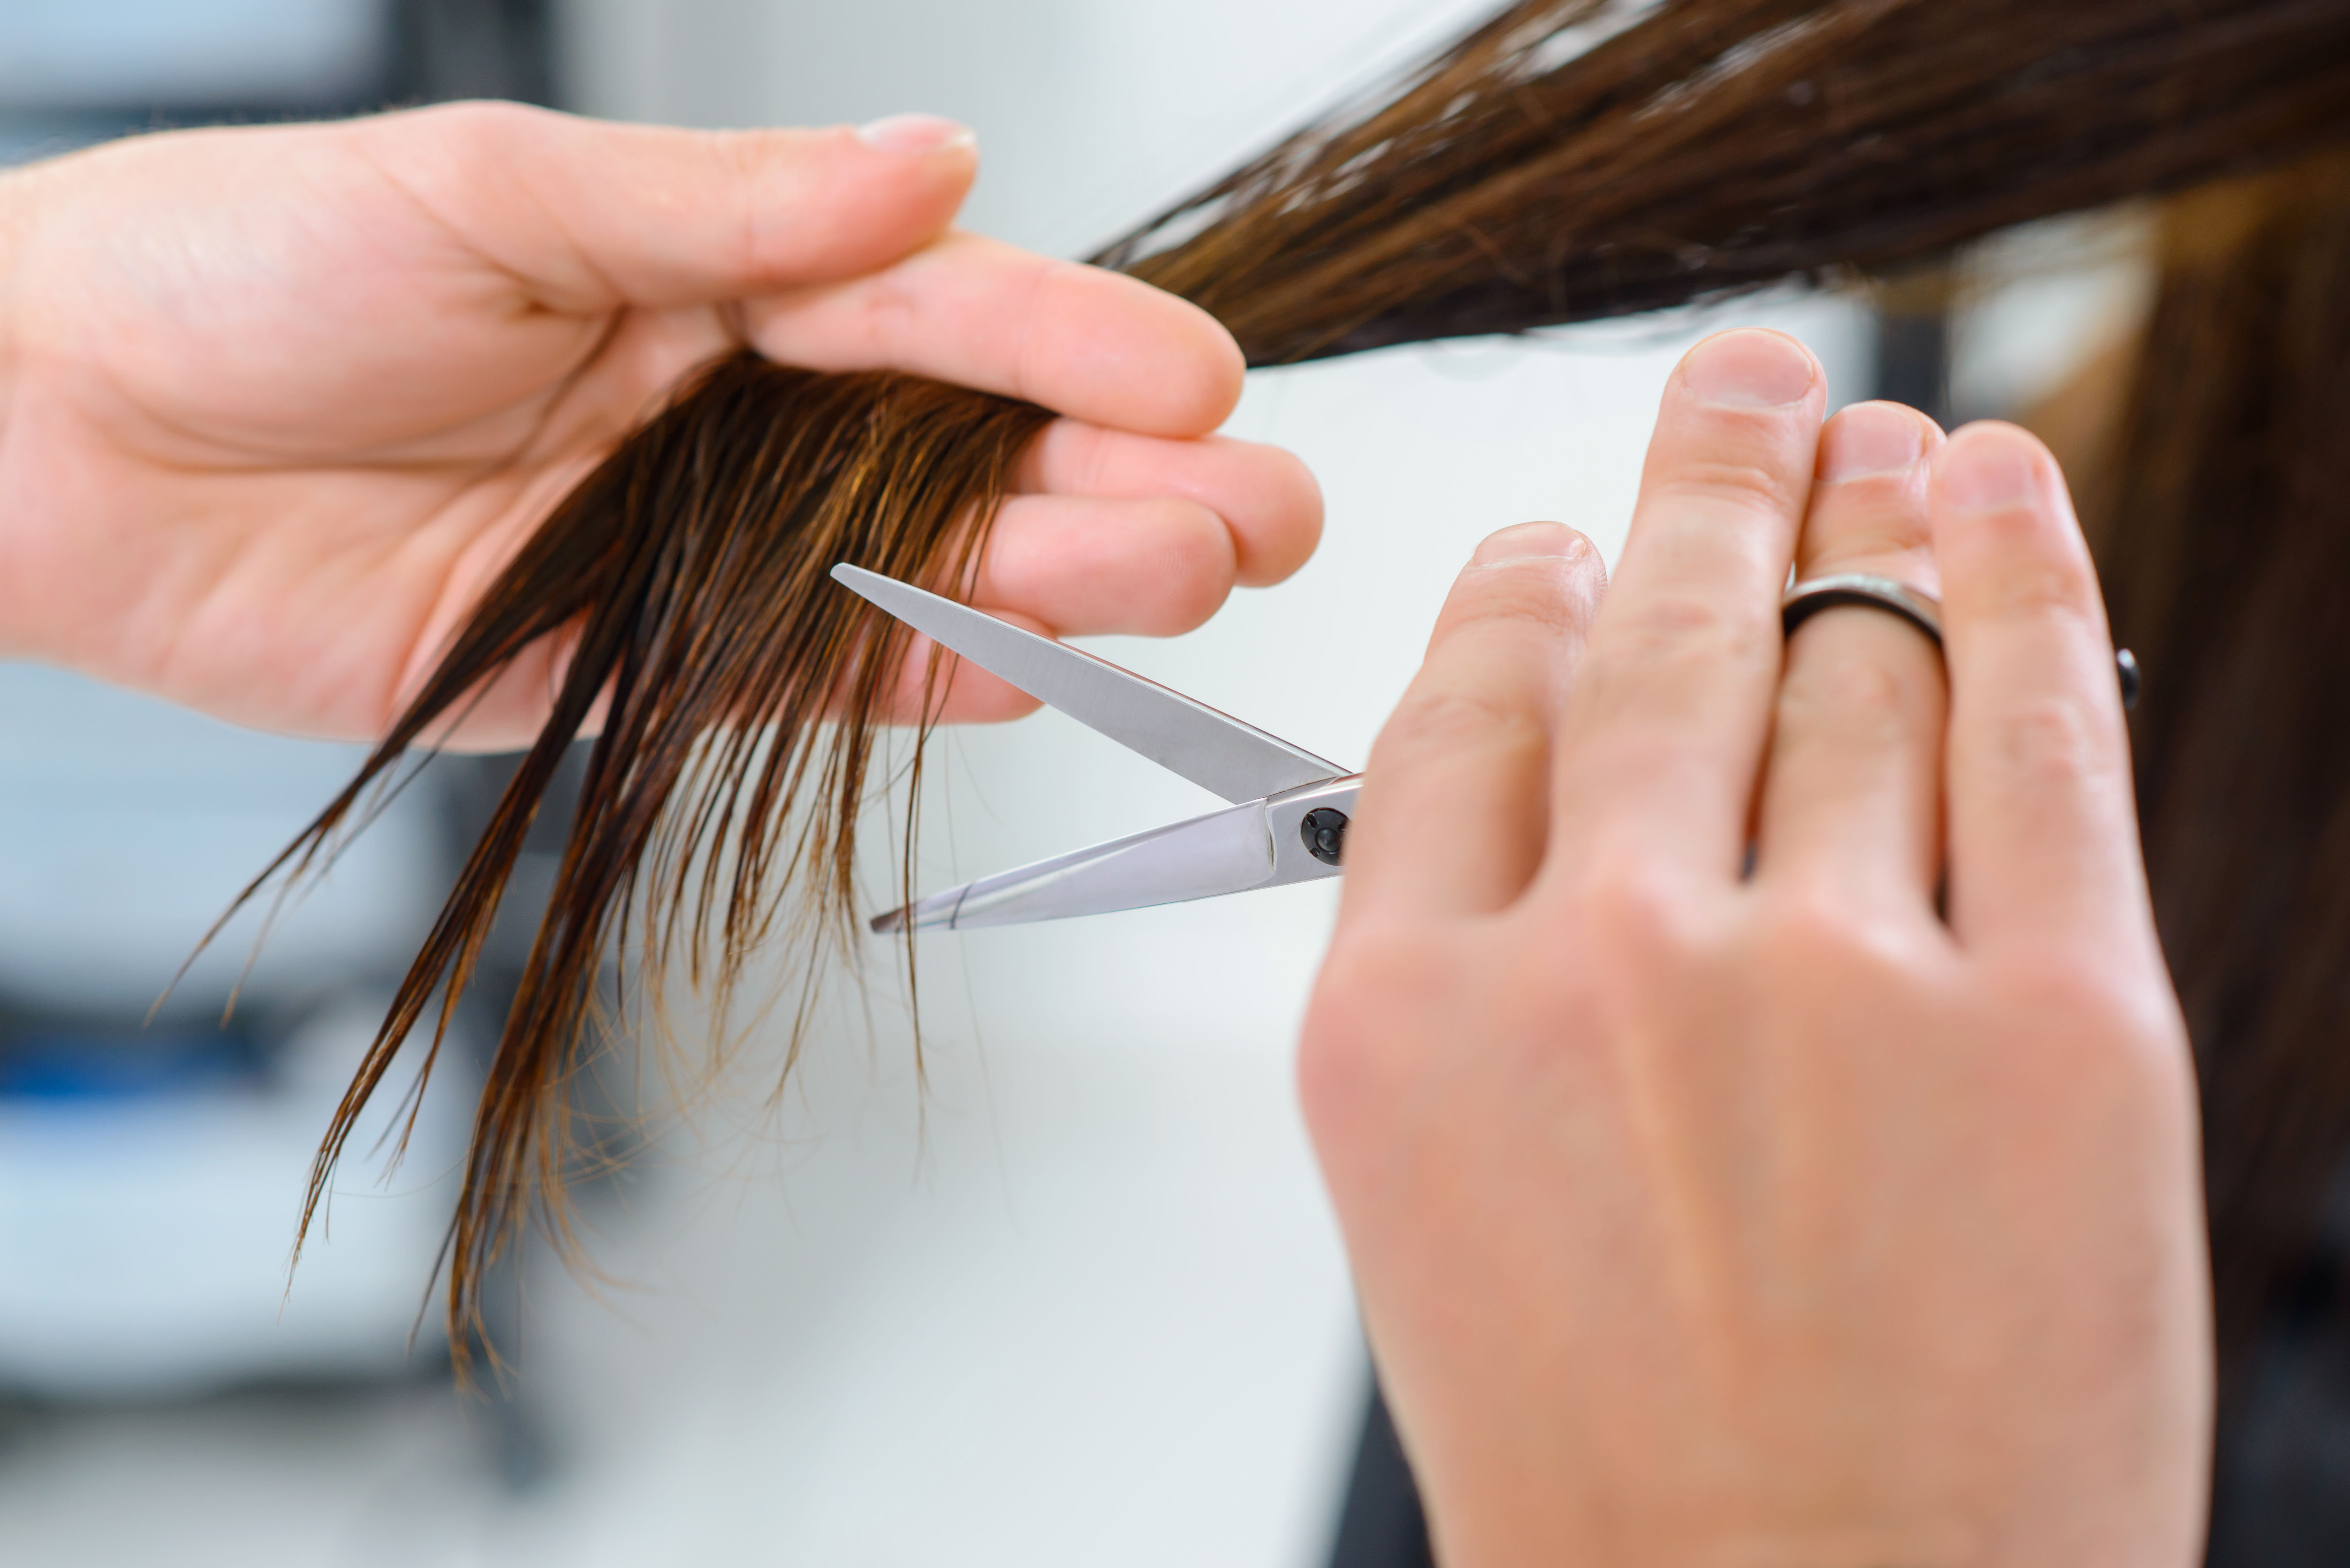 Trim hair to prevent hair loss